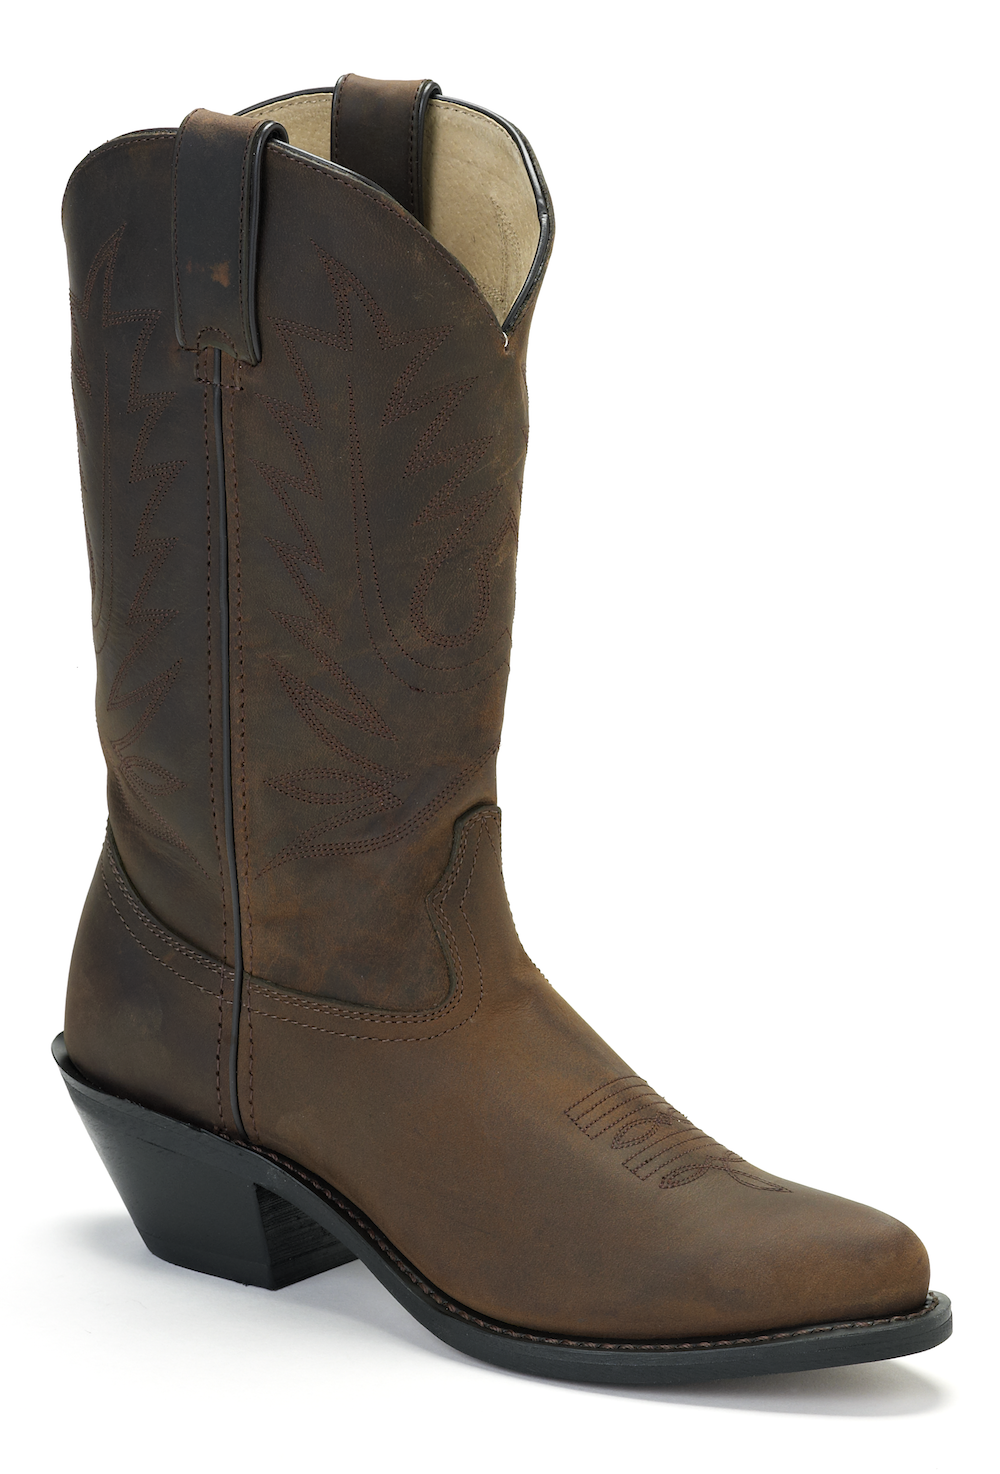 Womens Durango Tan